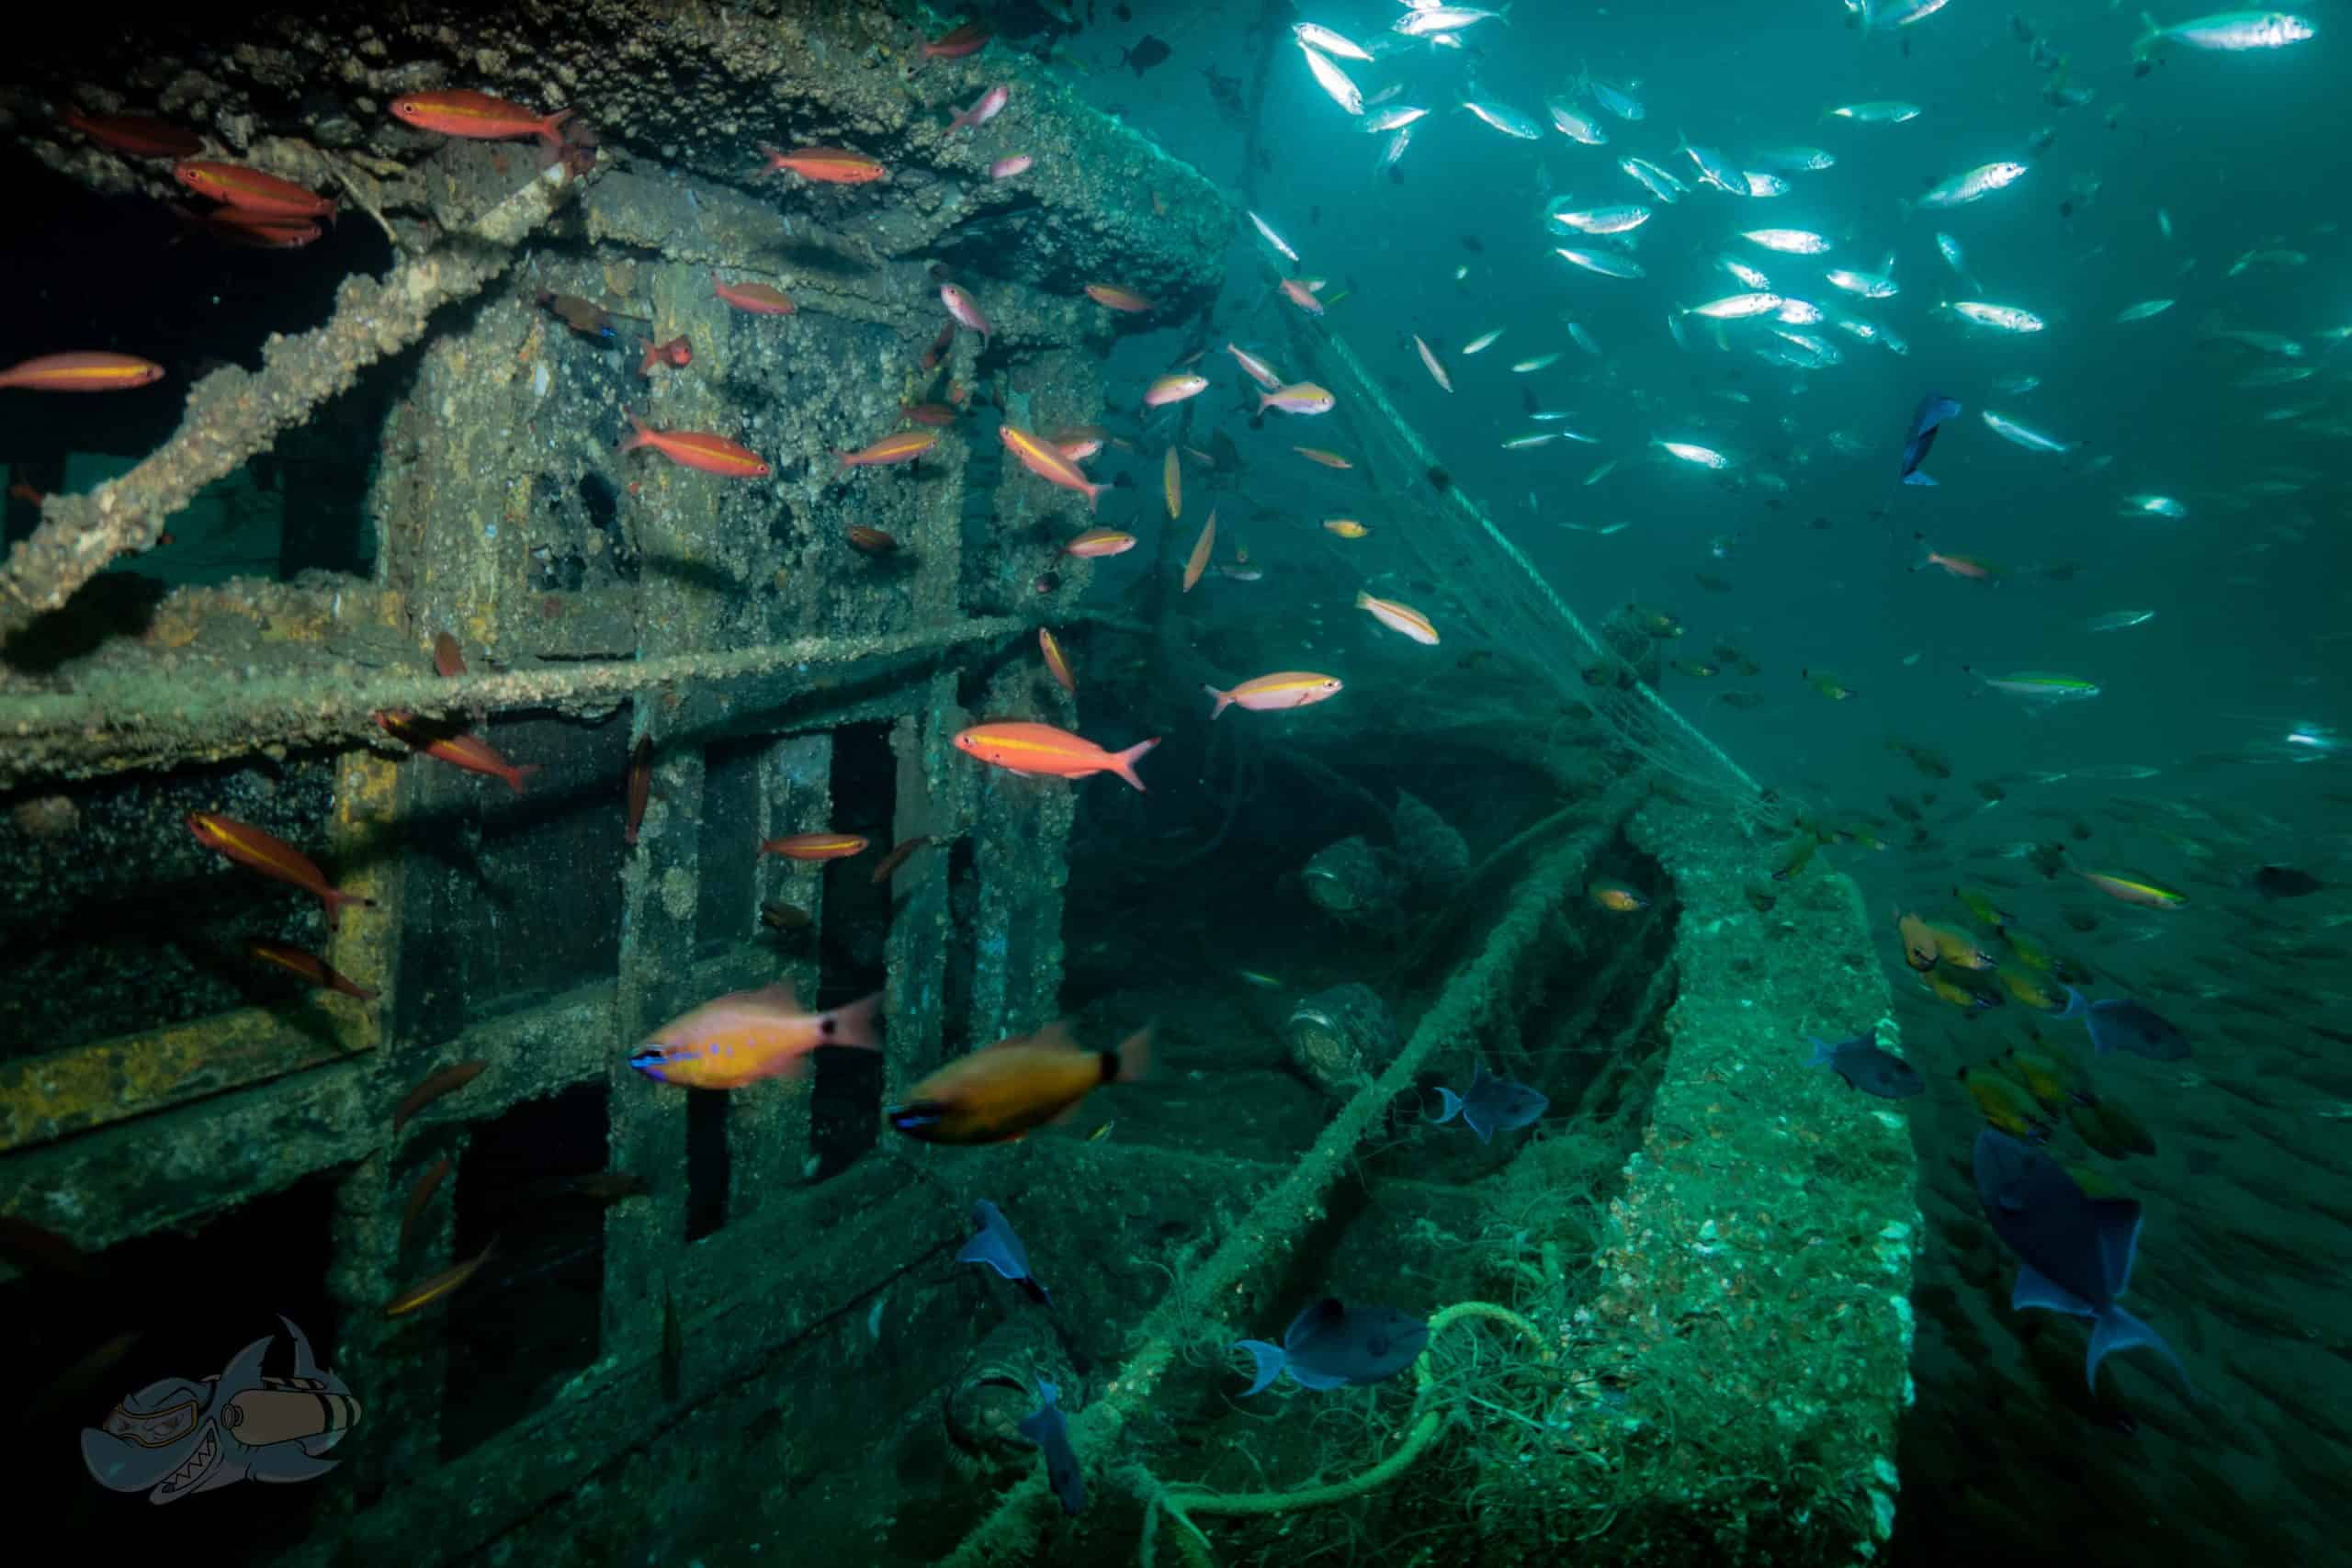 Marine life at at the wreck site